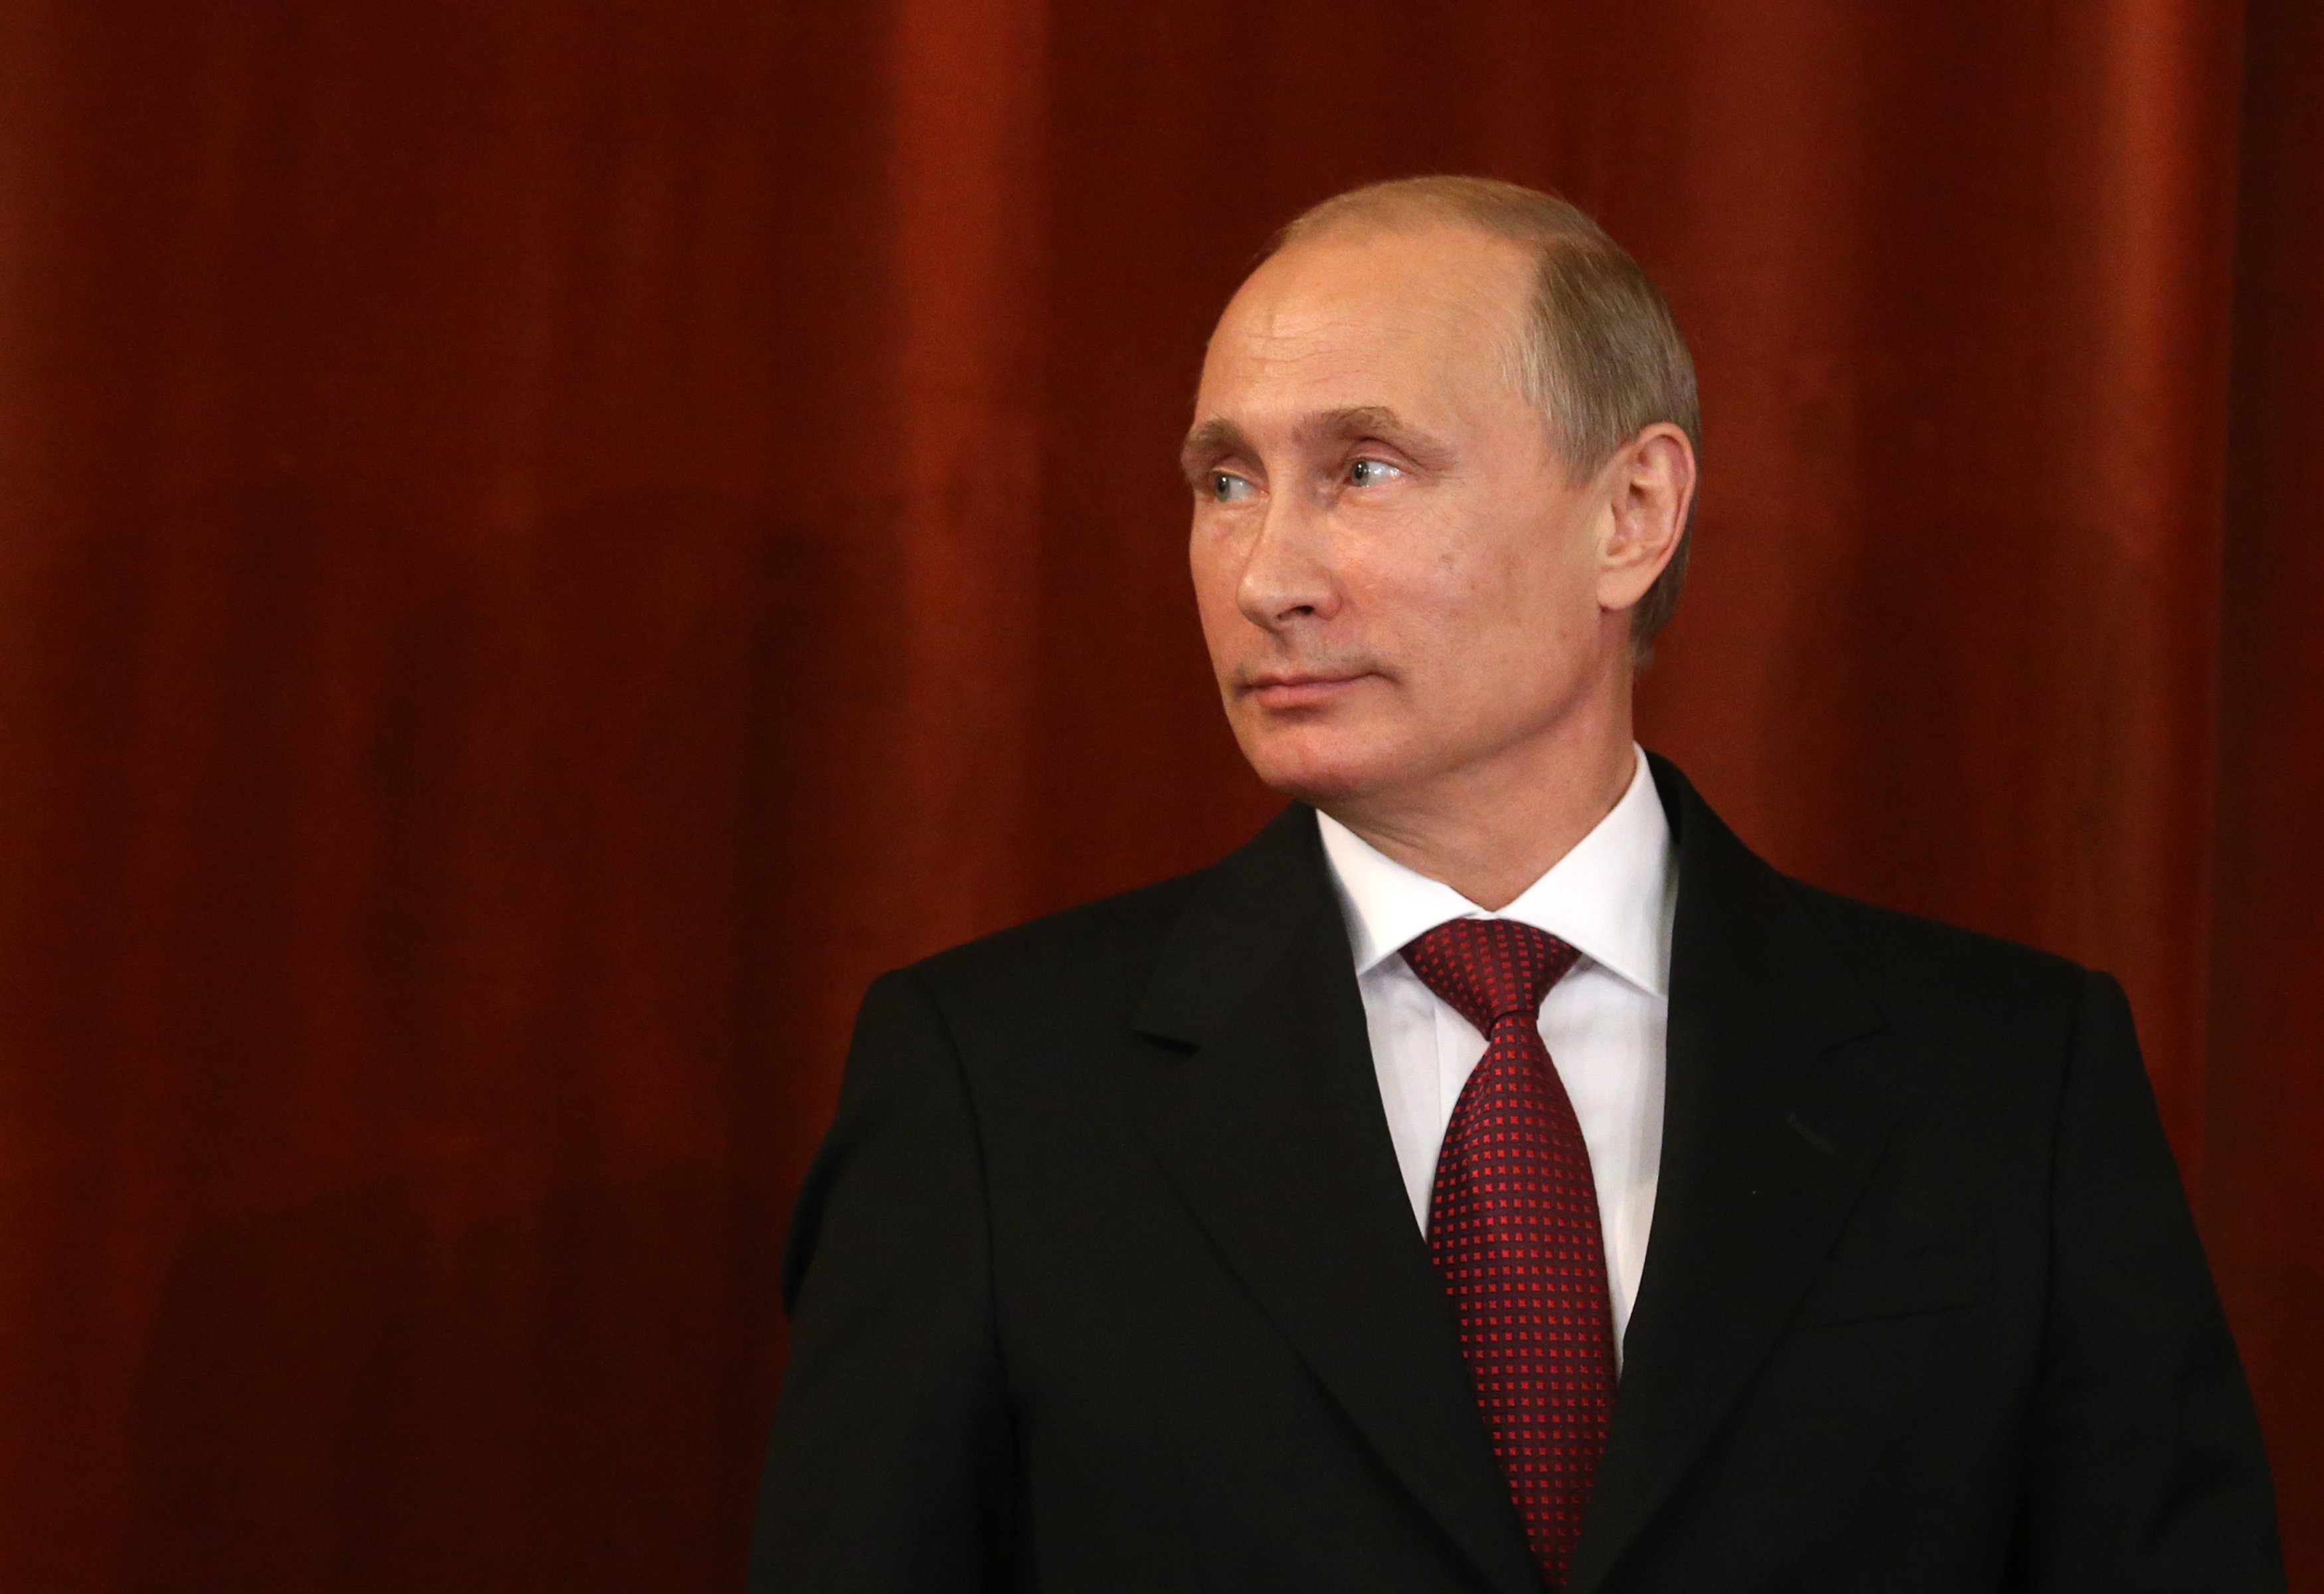 Russian President Vladimir Putin speaks during an annual meeting with ambassadors in the Ministry of Foreign Affairs on July 1, 2013 in Moscow, Russia.